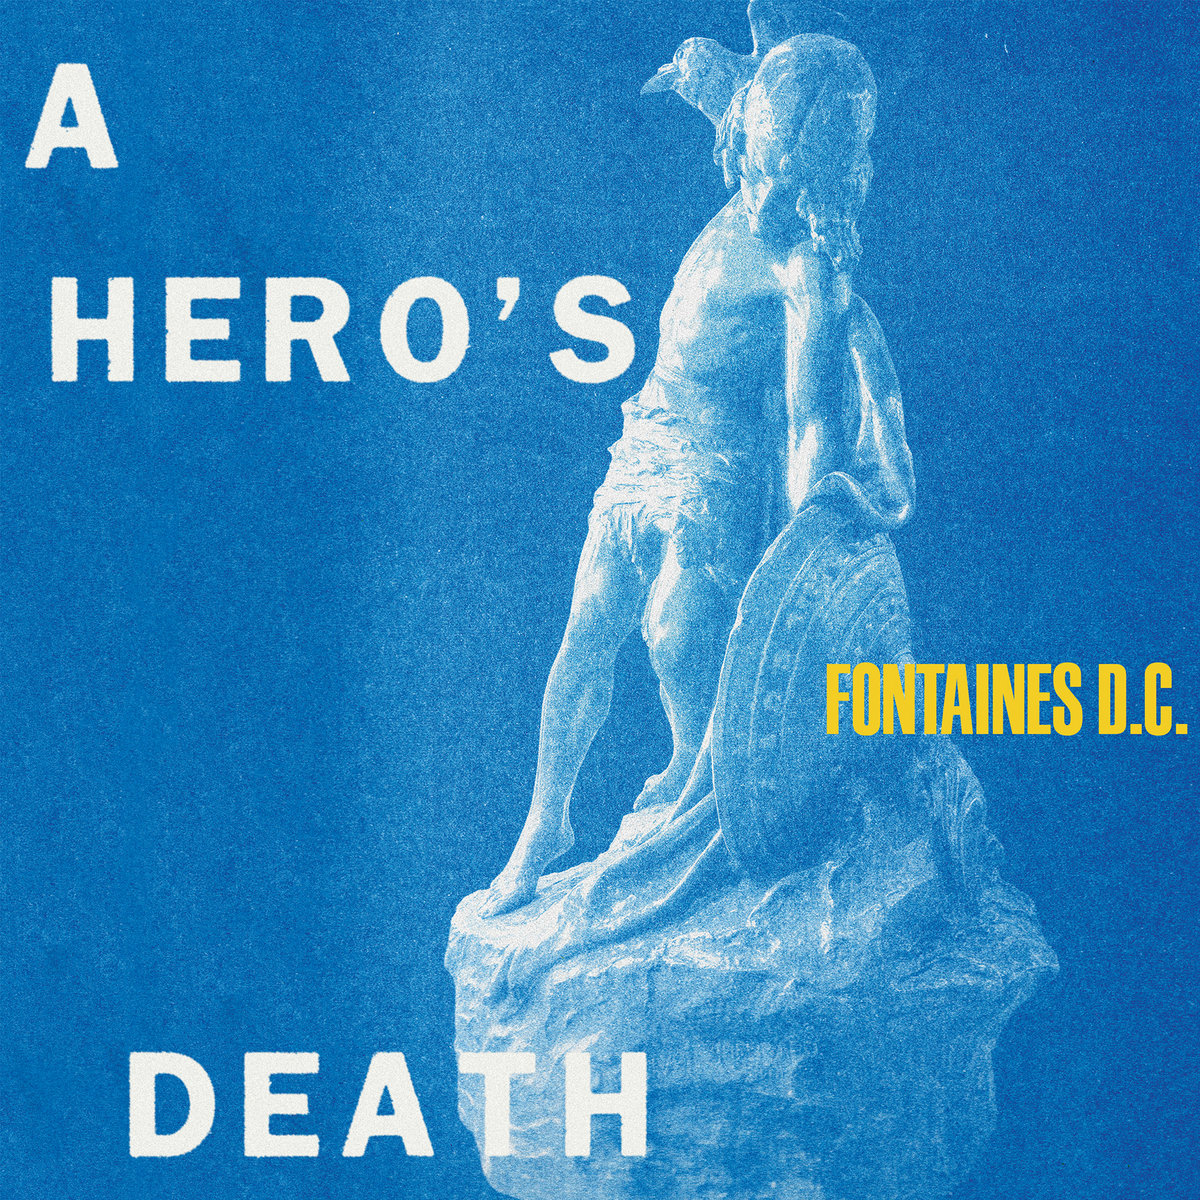 Fontaines a hero's death